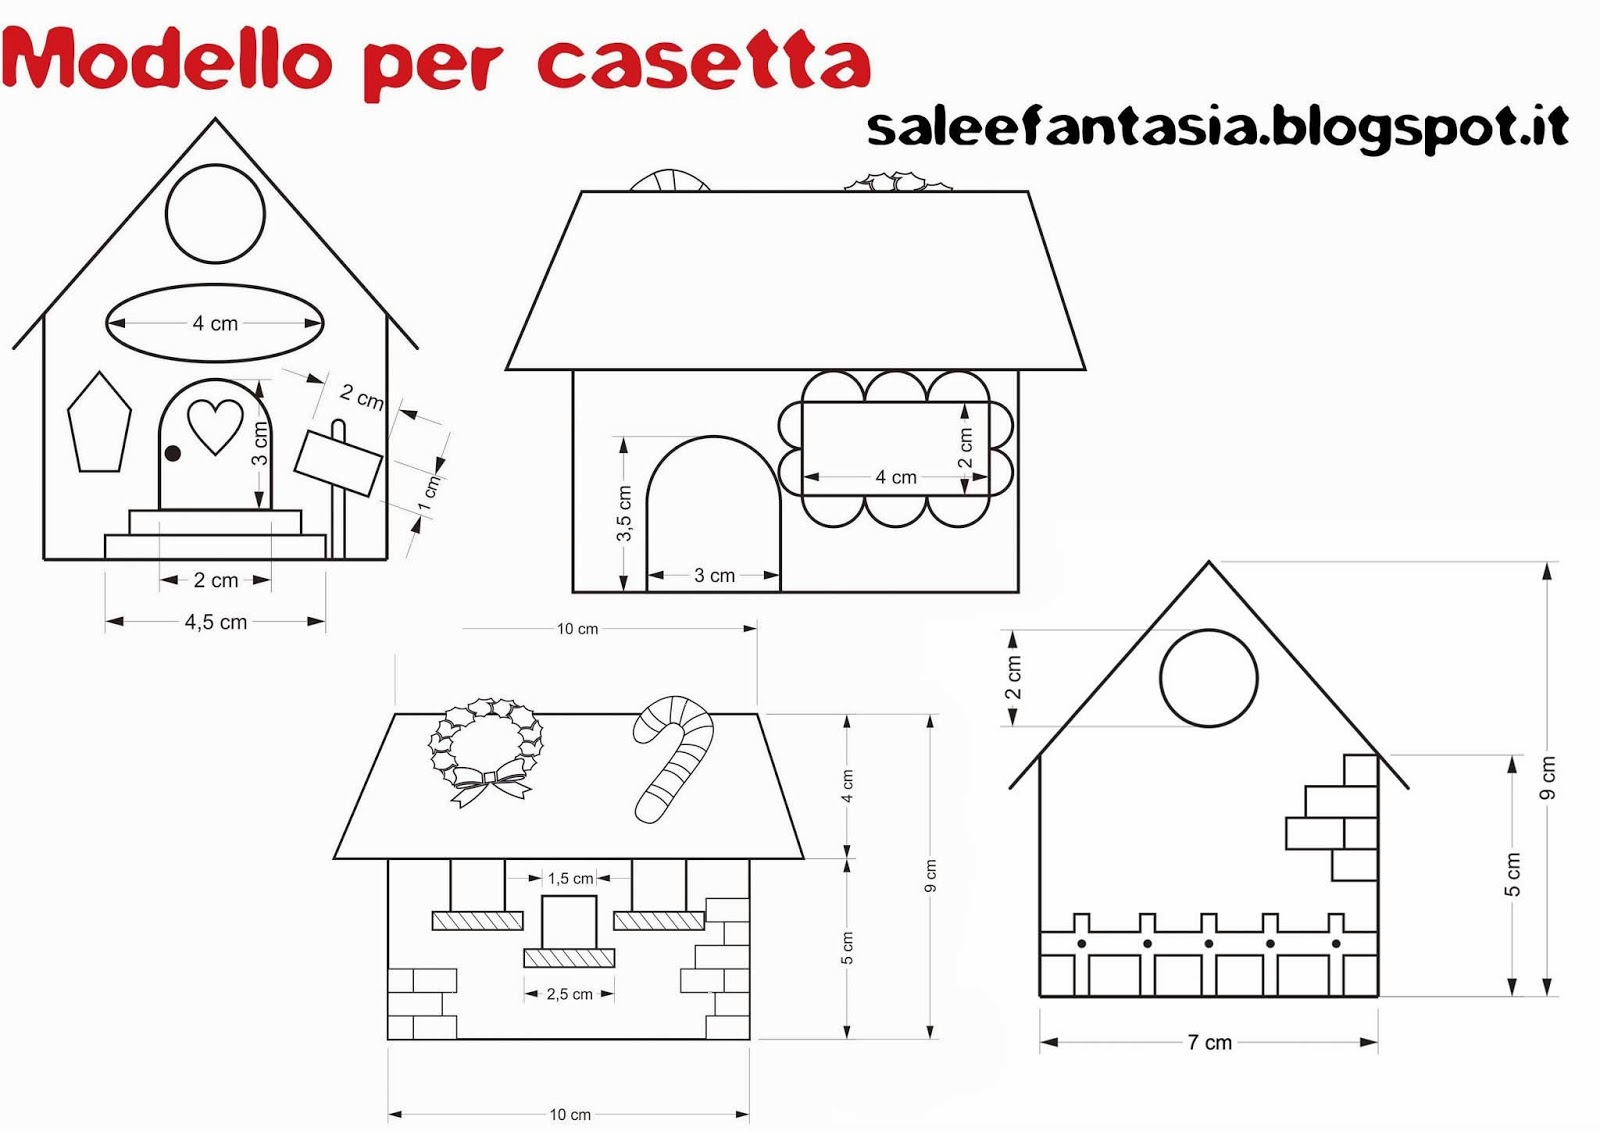 Sale e fantasia casetta di babbo natale for Procedura per costruire una casa